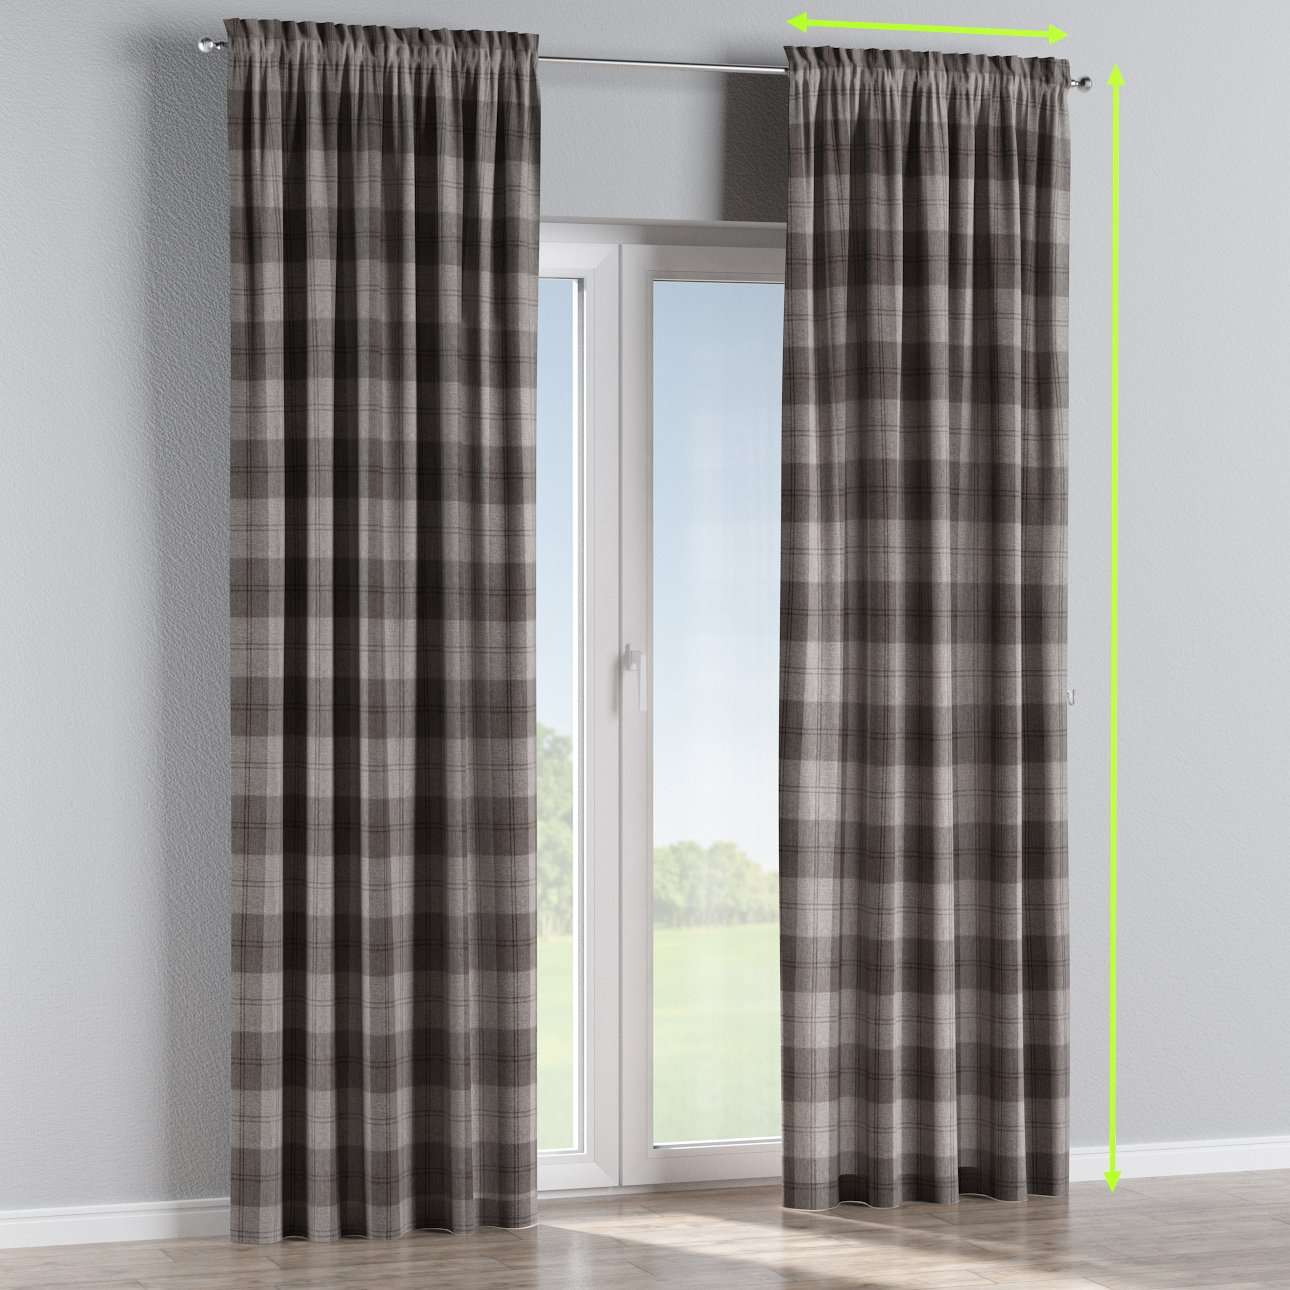 Slot and frill lined curtains in collection Edinburgh, fabric: 115-75